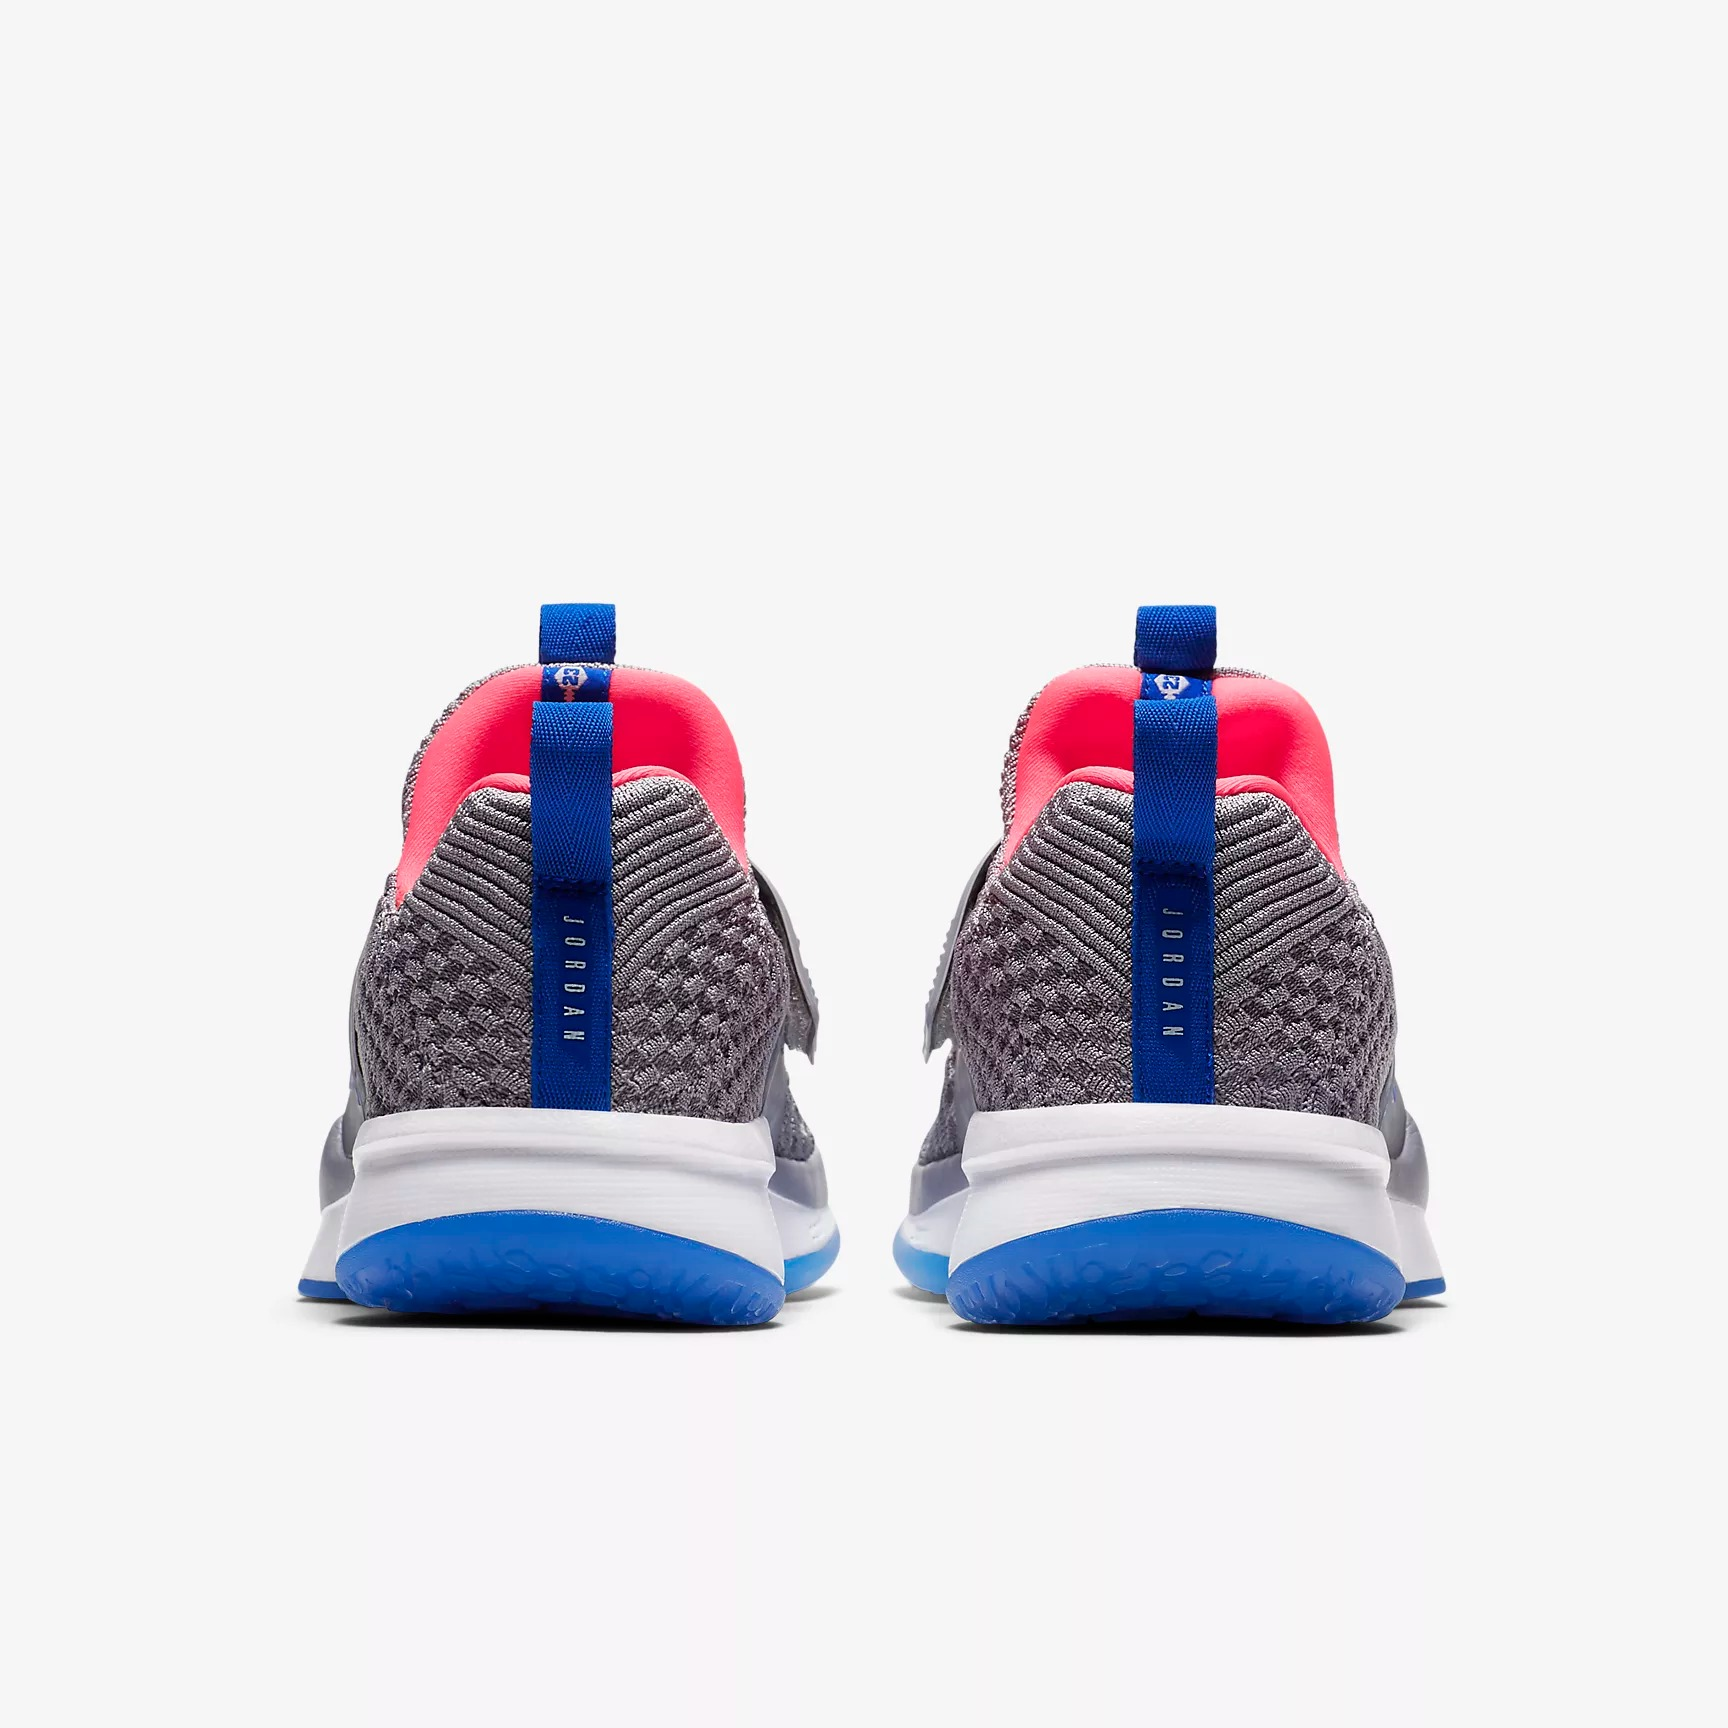 280f3ef6bbed Jordan Trainer 2 Flyknit Training Shoes - SPORT SHOES TRAINING SHOES ...